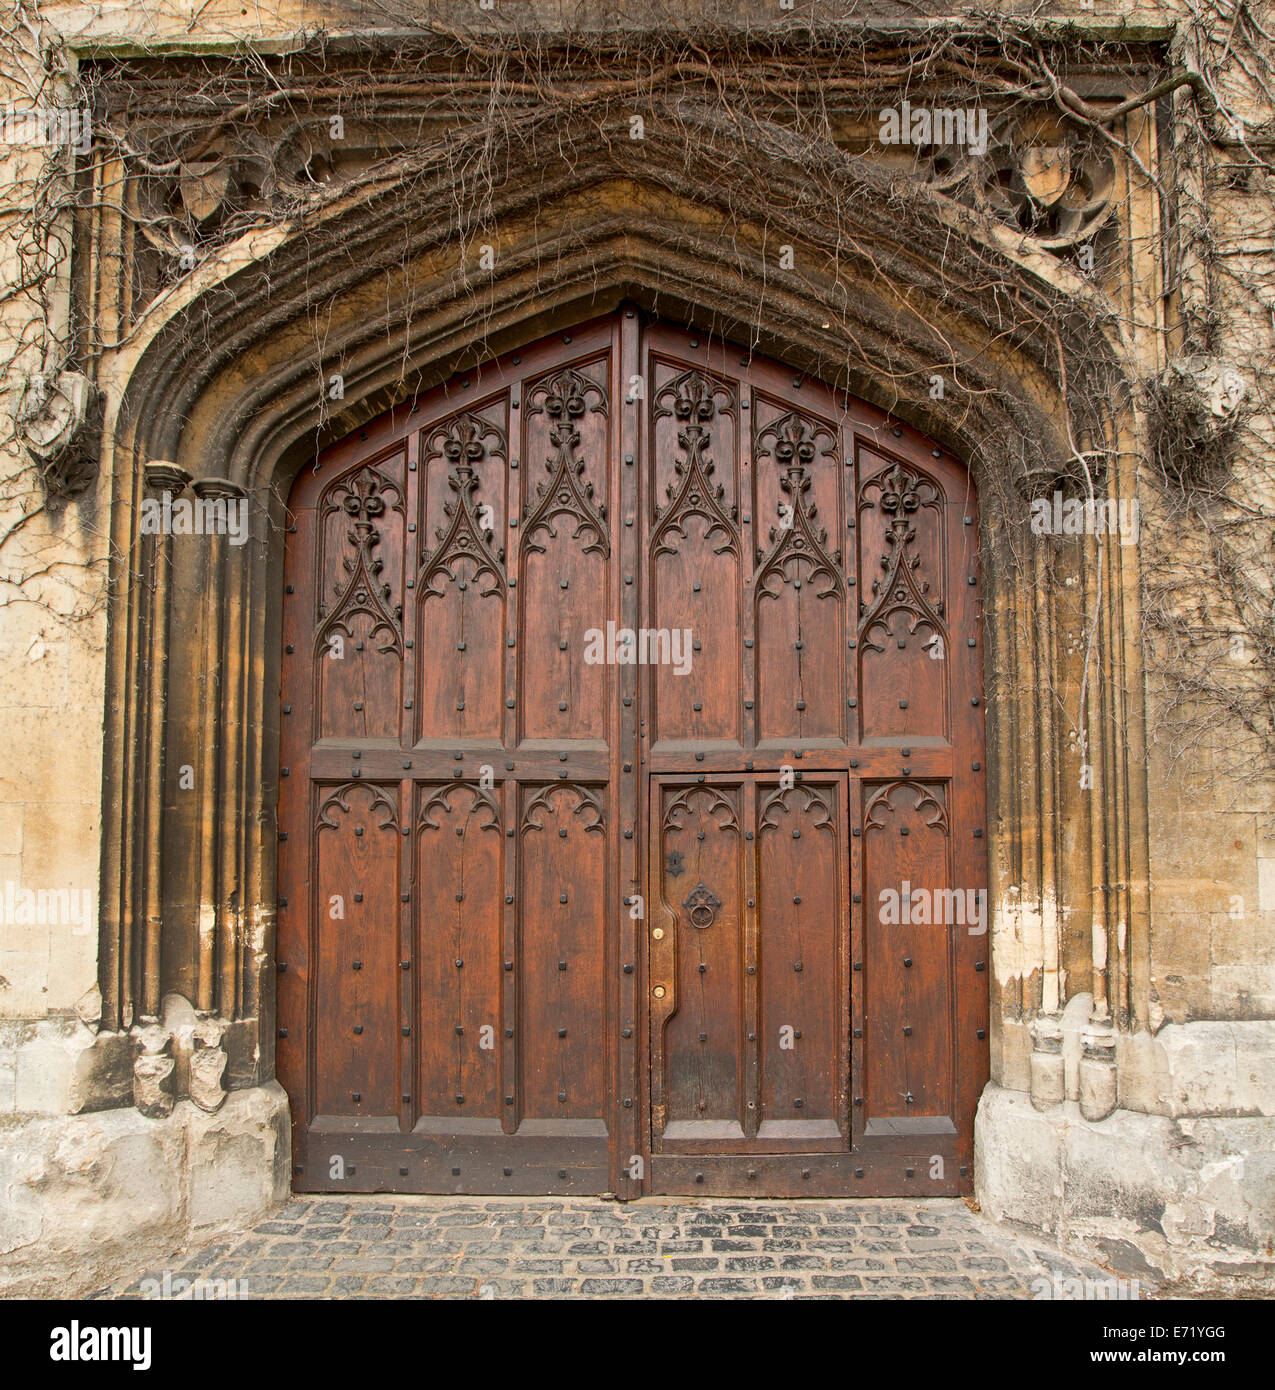 Spectacular rich brown double wooden doors with intricate carving ...